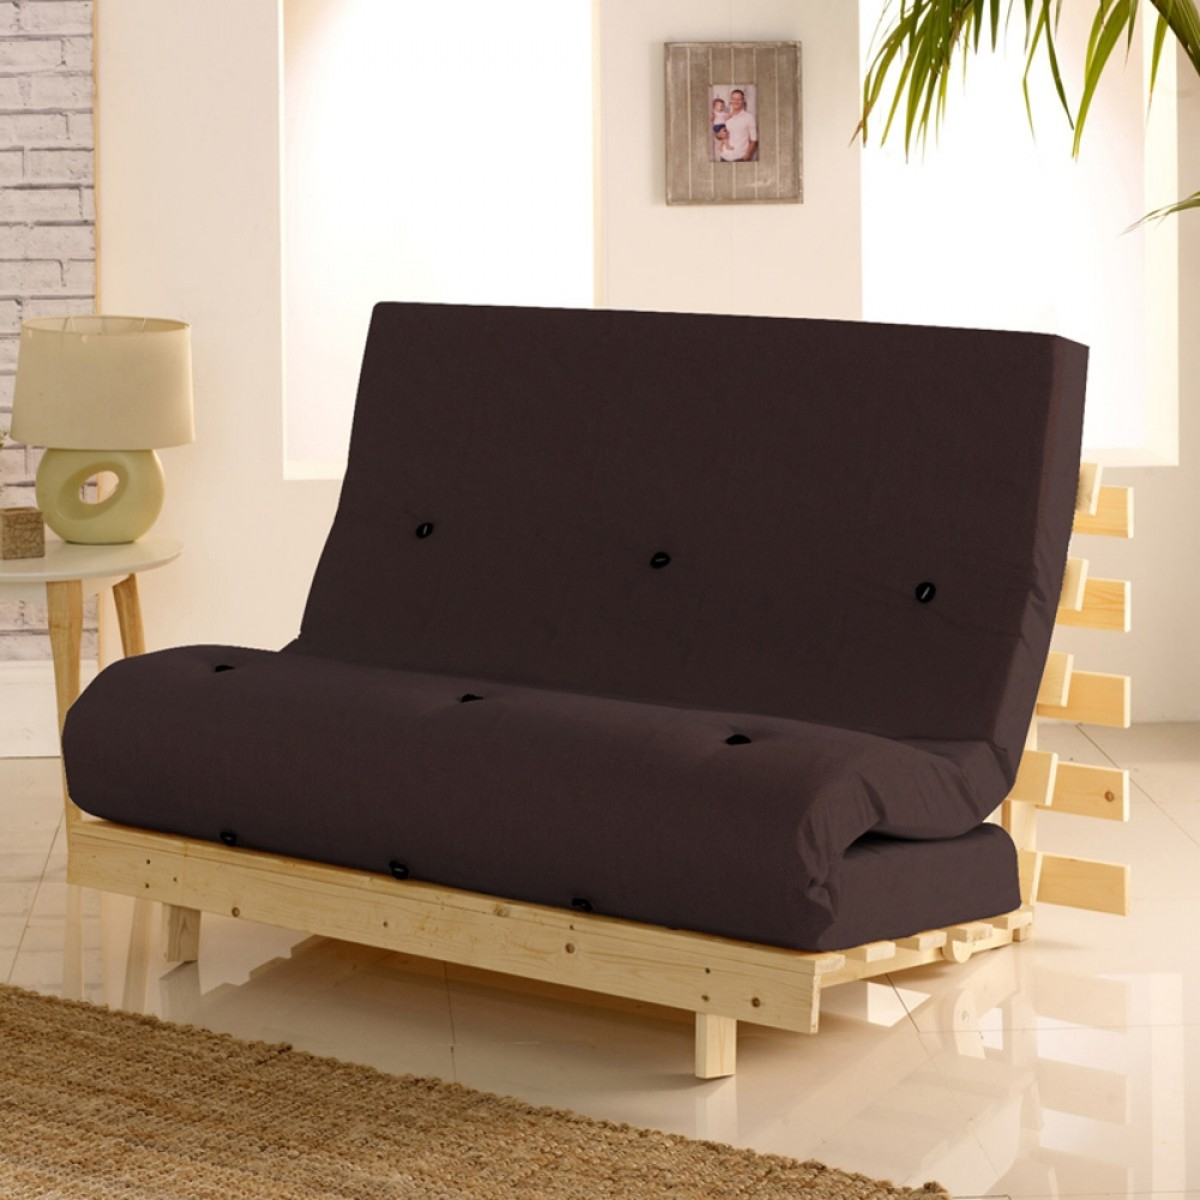 Metro Wooden Folding Guest Futon Brown Mattress